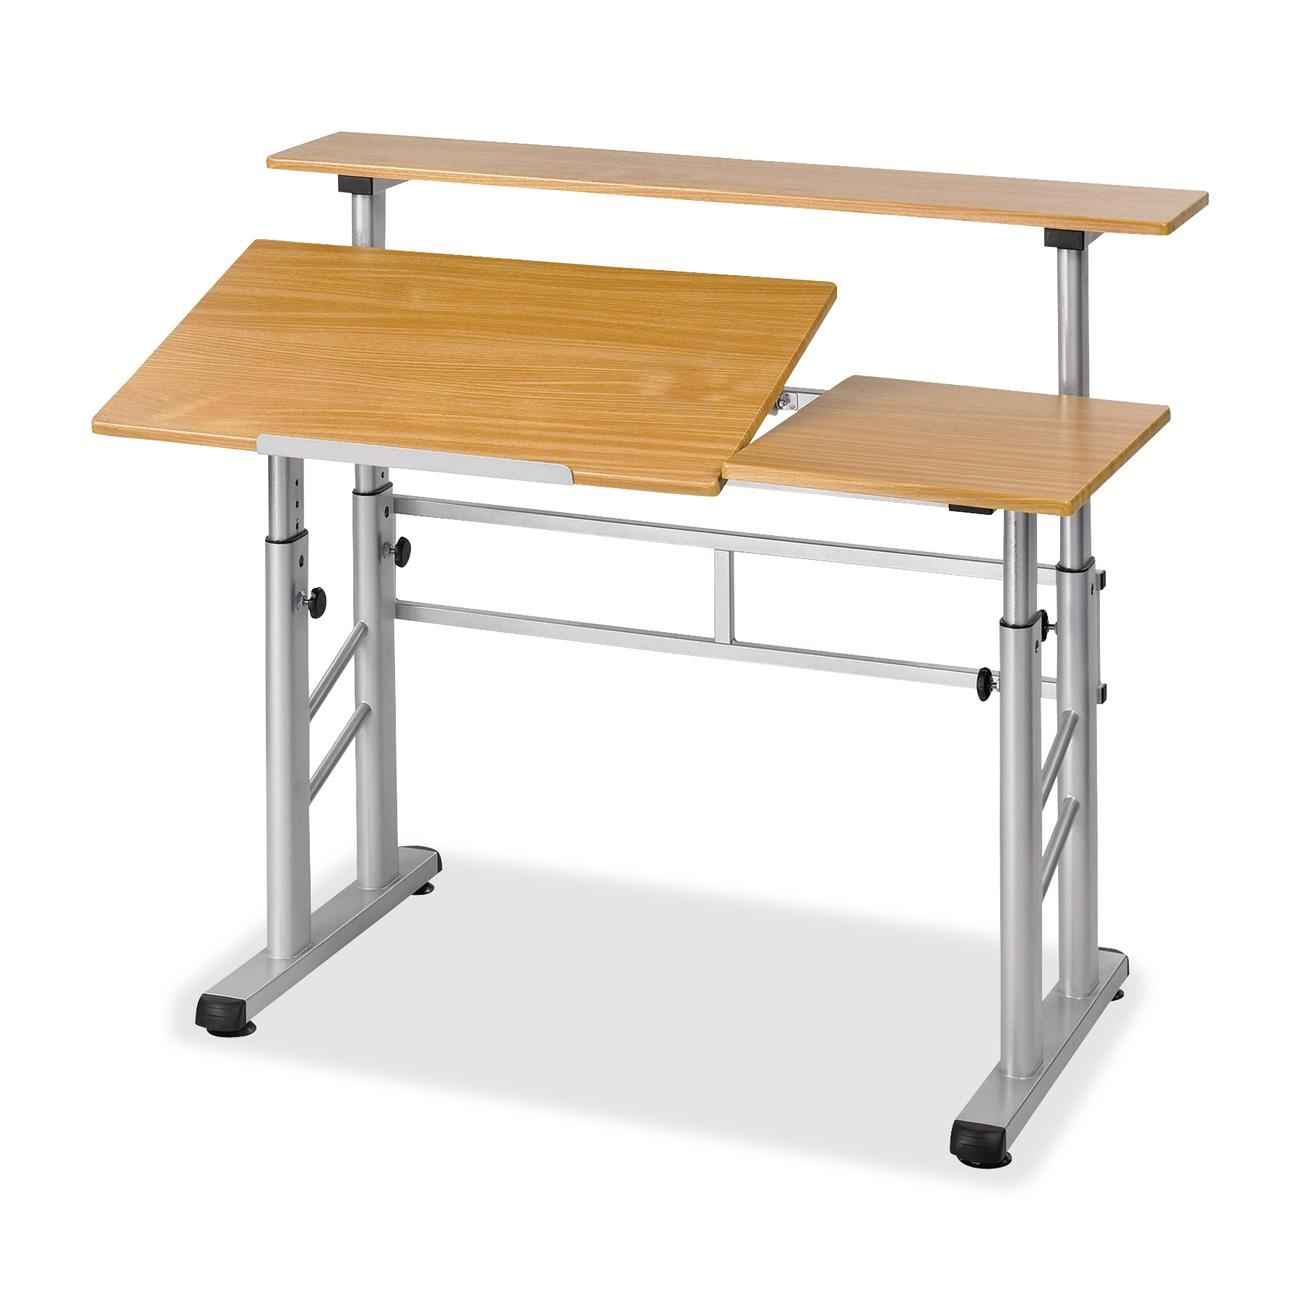 Safco Split Level Wooden Drafting Table with Adjustable Height